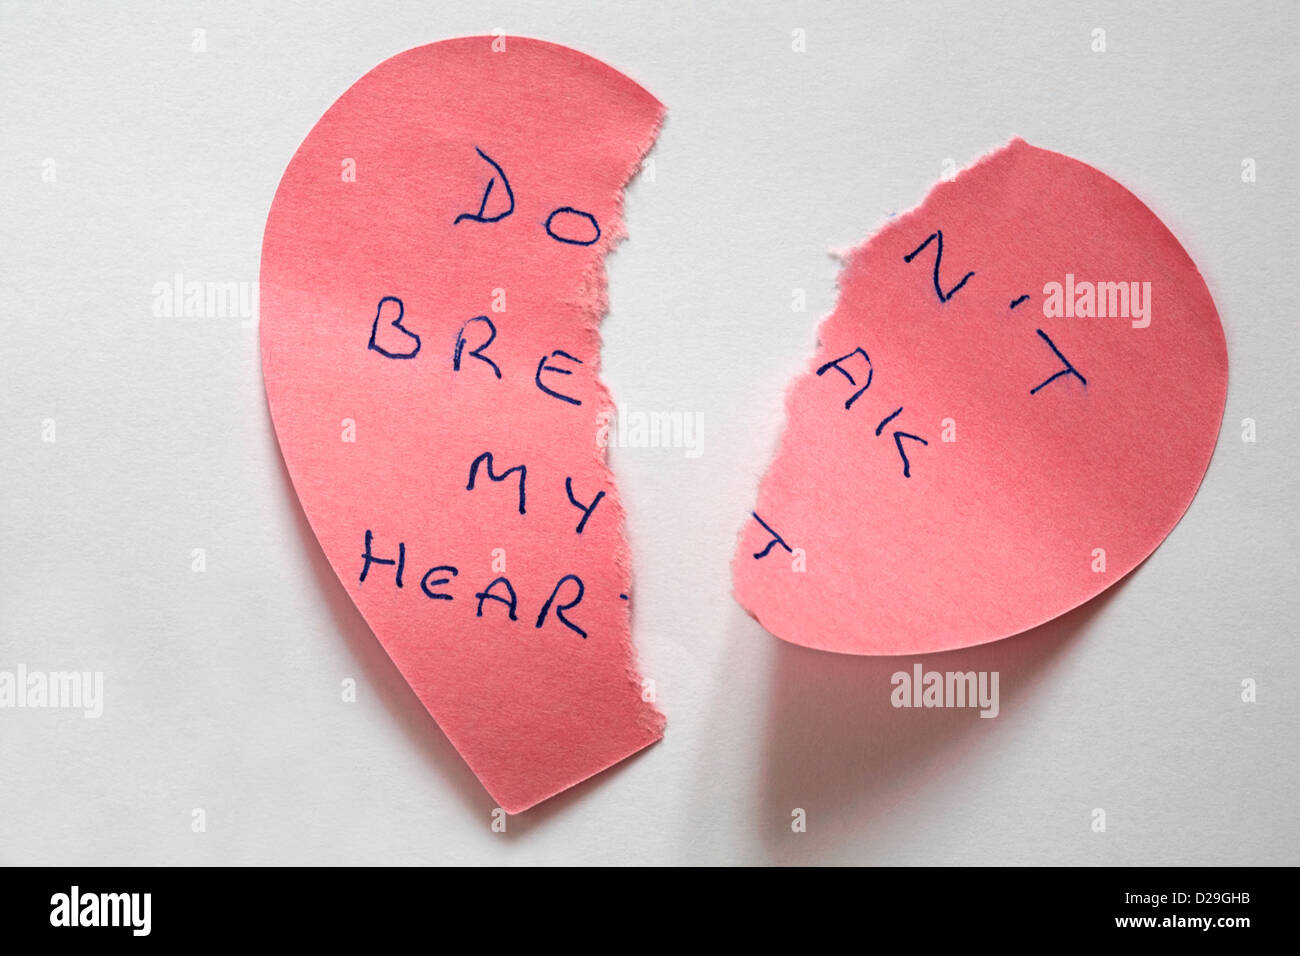 heartbroken - don't break my heart message written on torn up pink heart shaped post it note isolated on white - Stock Image